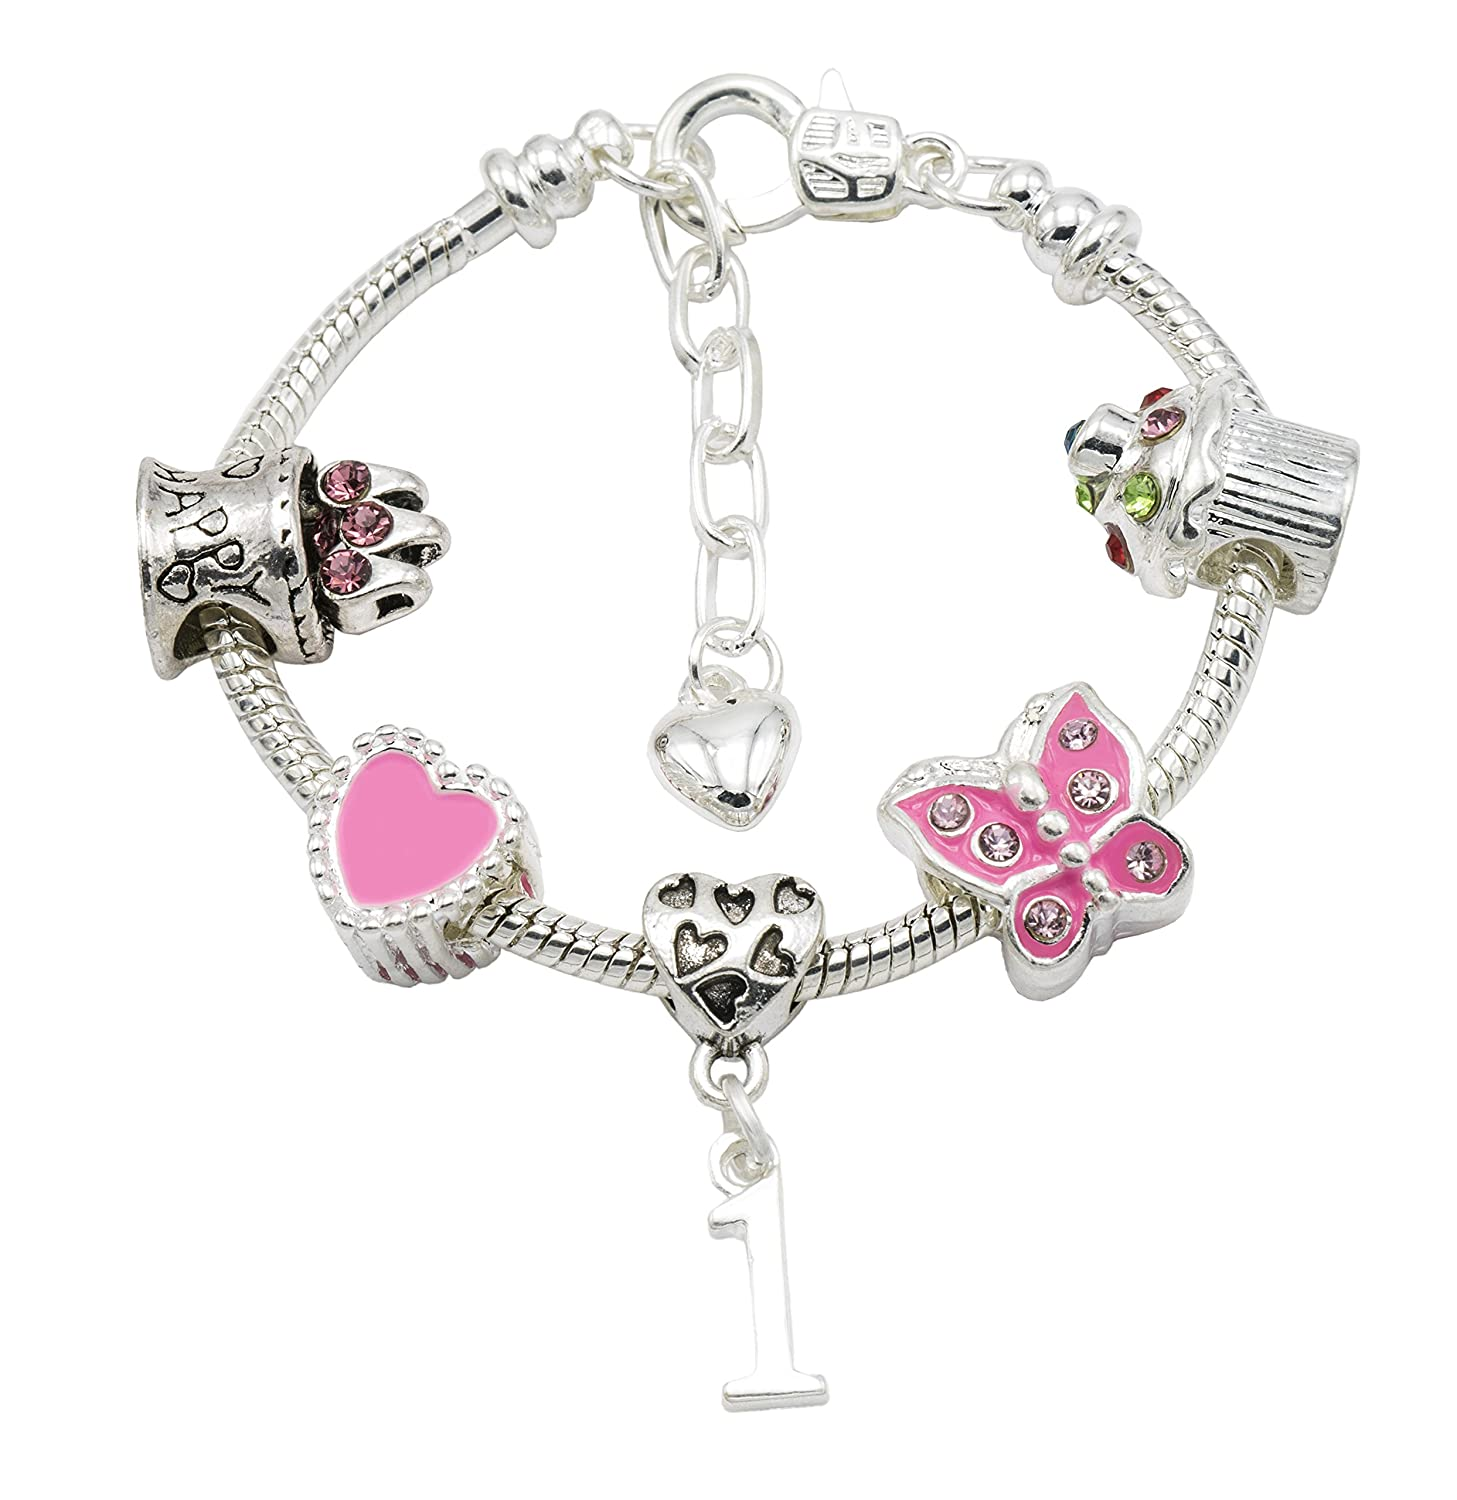 Jewellery Hut Girl's Silver Plated Birthday Charm Bracelet with Gift Pouch - Ages 1-11 Available BRSILVERBIRTHDAYAGE1-11